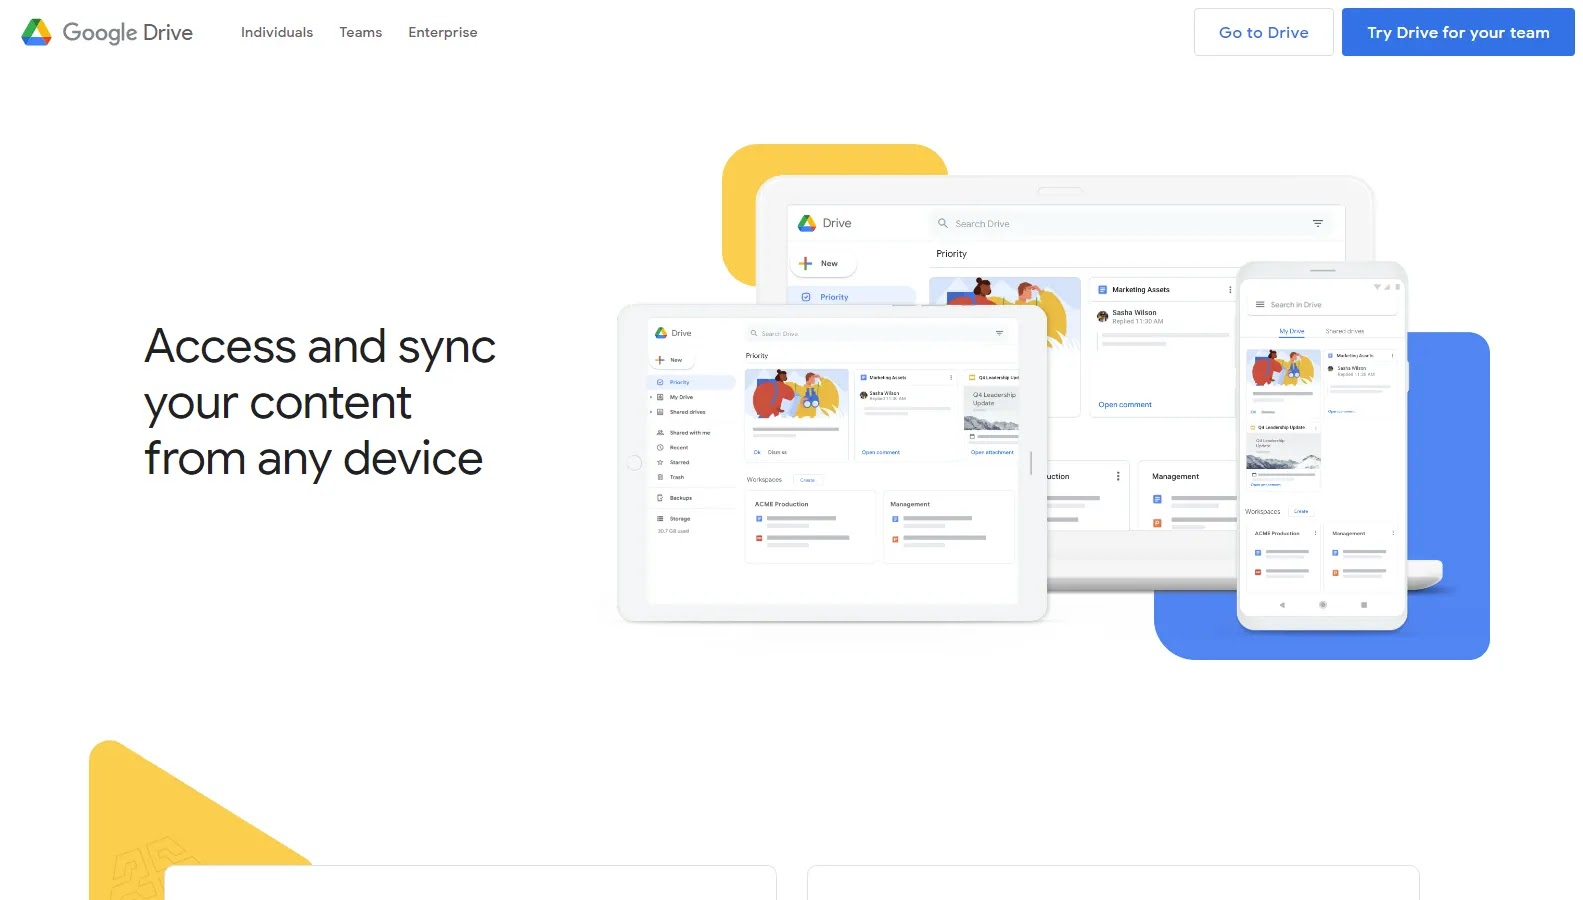 Google Drive - Some of the Best Free Cloud Storage Options in 2021